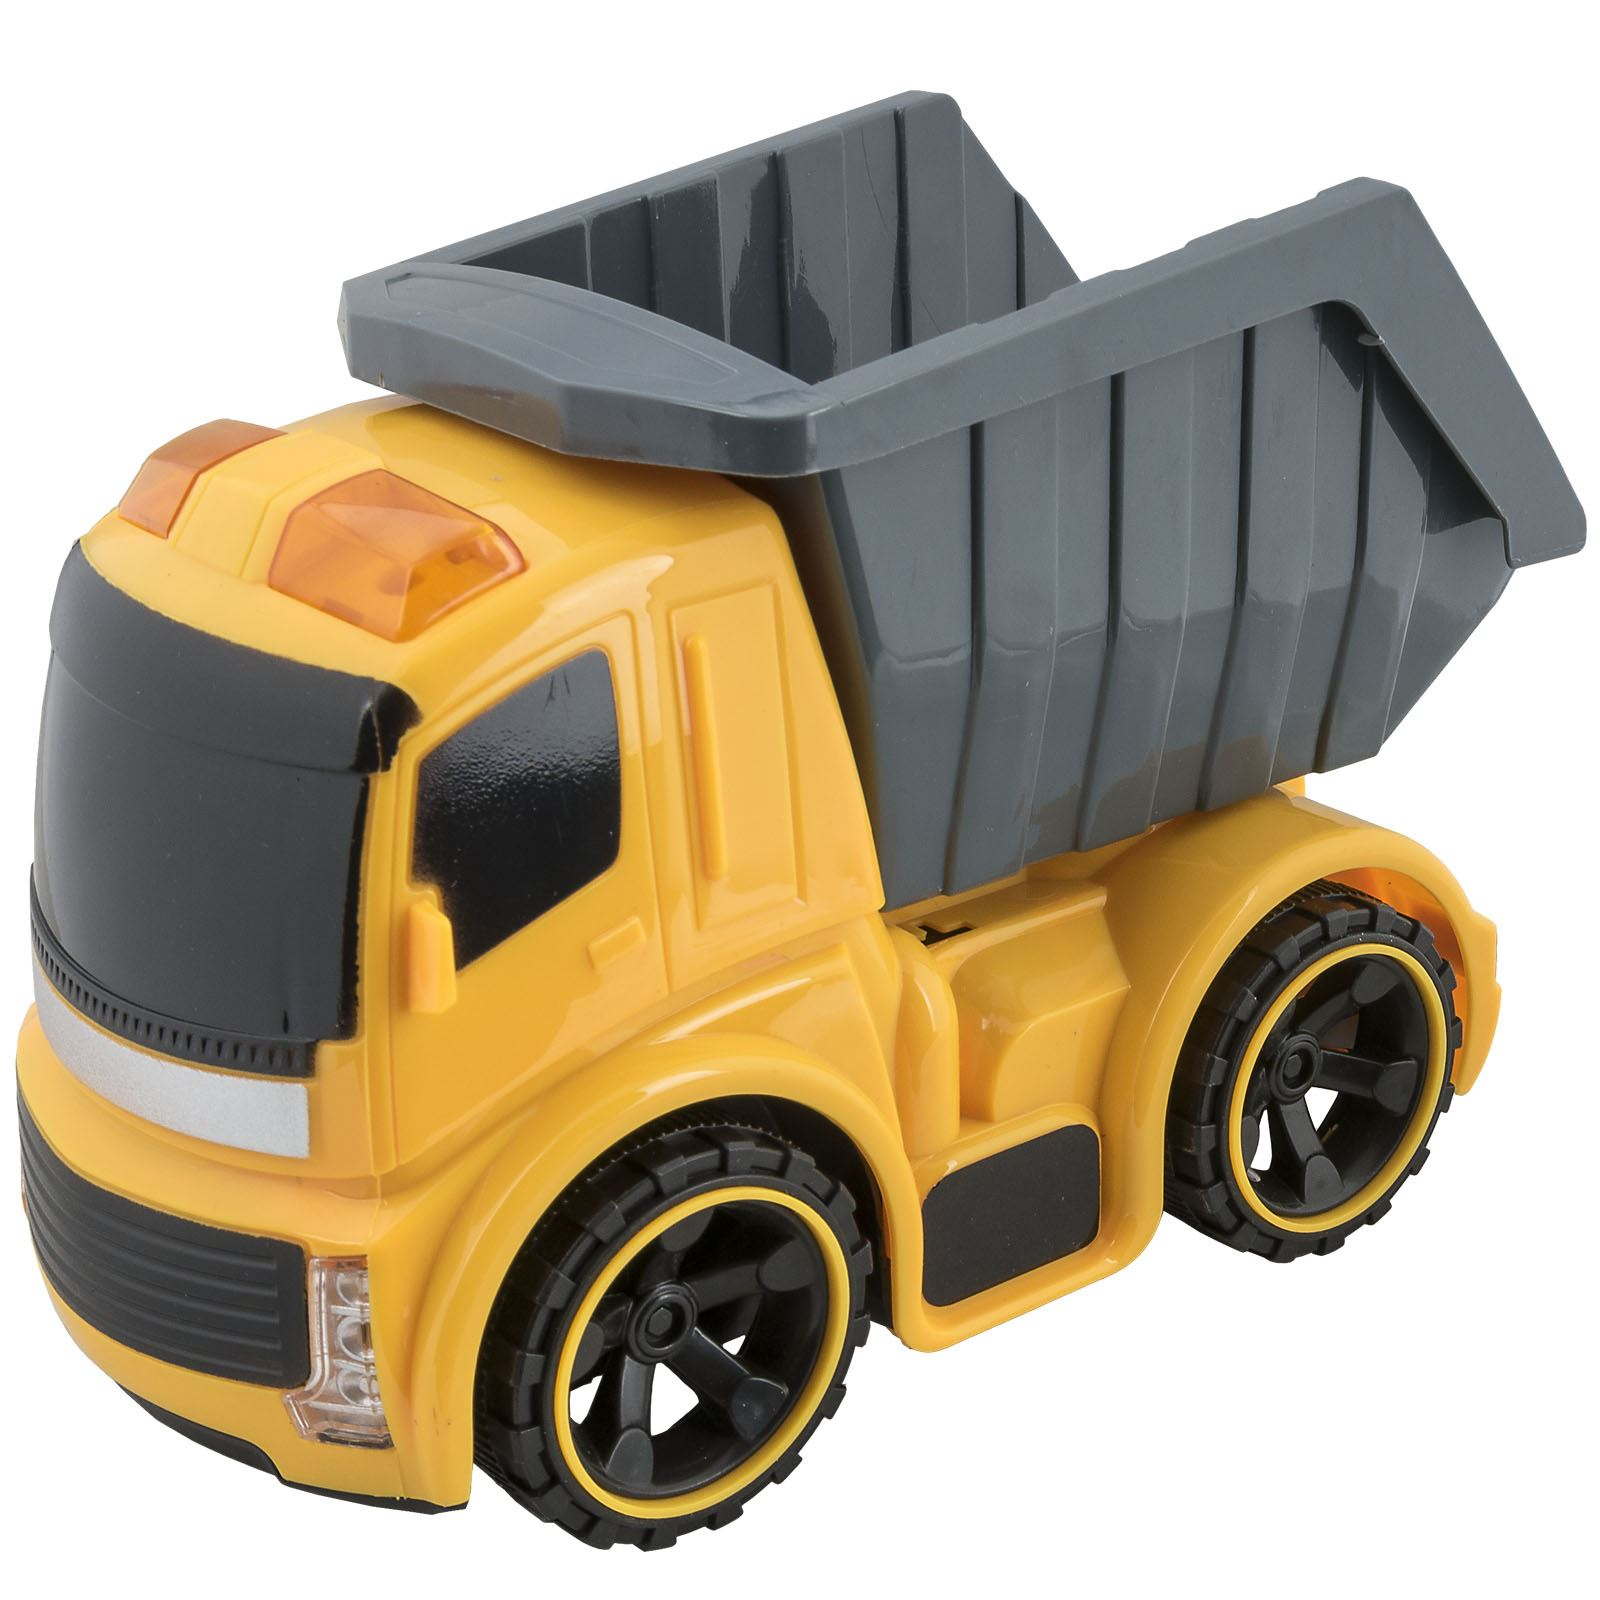 kids friction powered construction toy truck vehicle dump tipper